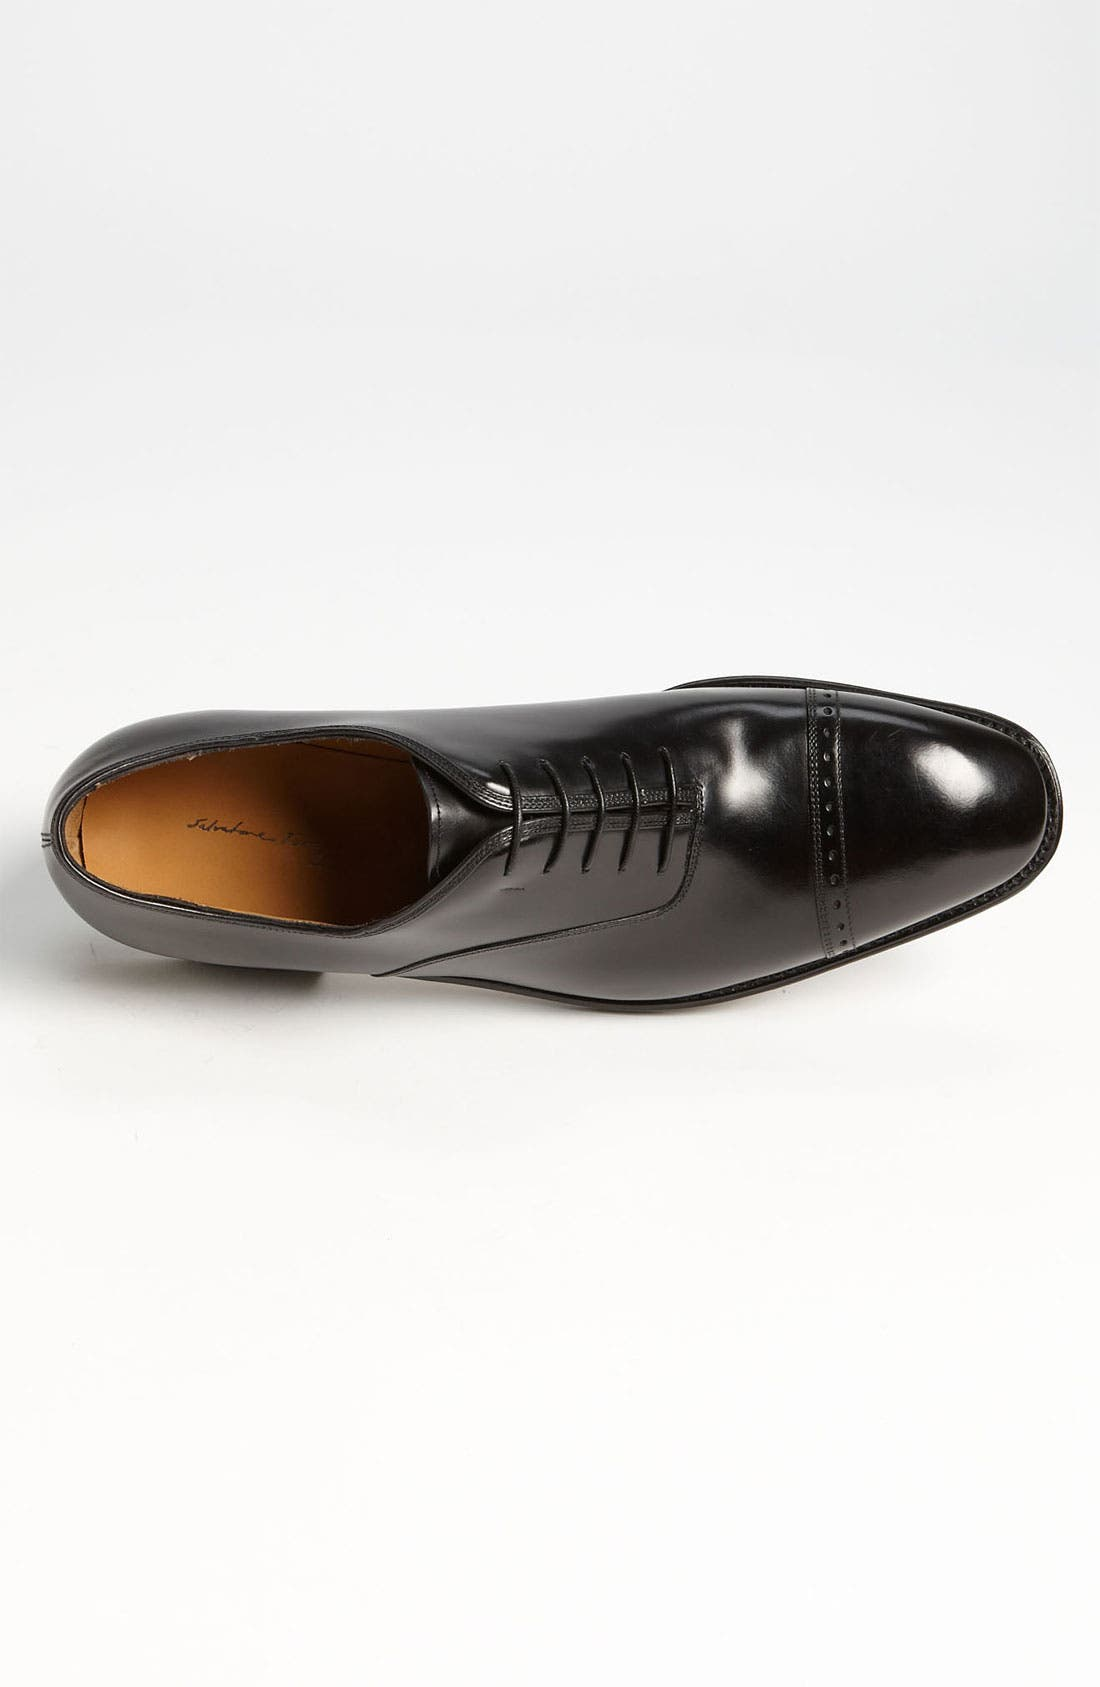 Alternate Image 3  - Salvatore Ferragamo 'Domino' Cap Toe Oxford (Online Only)